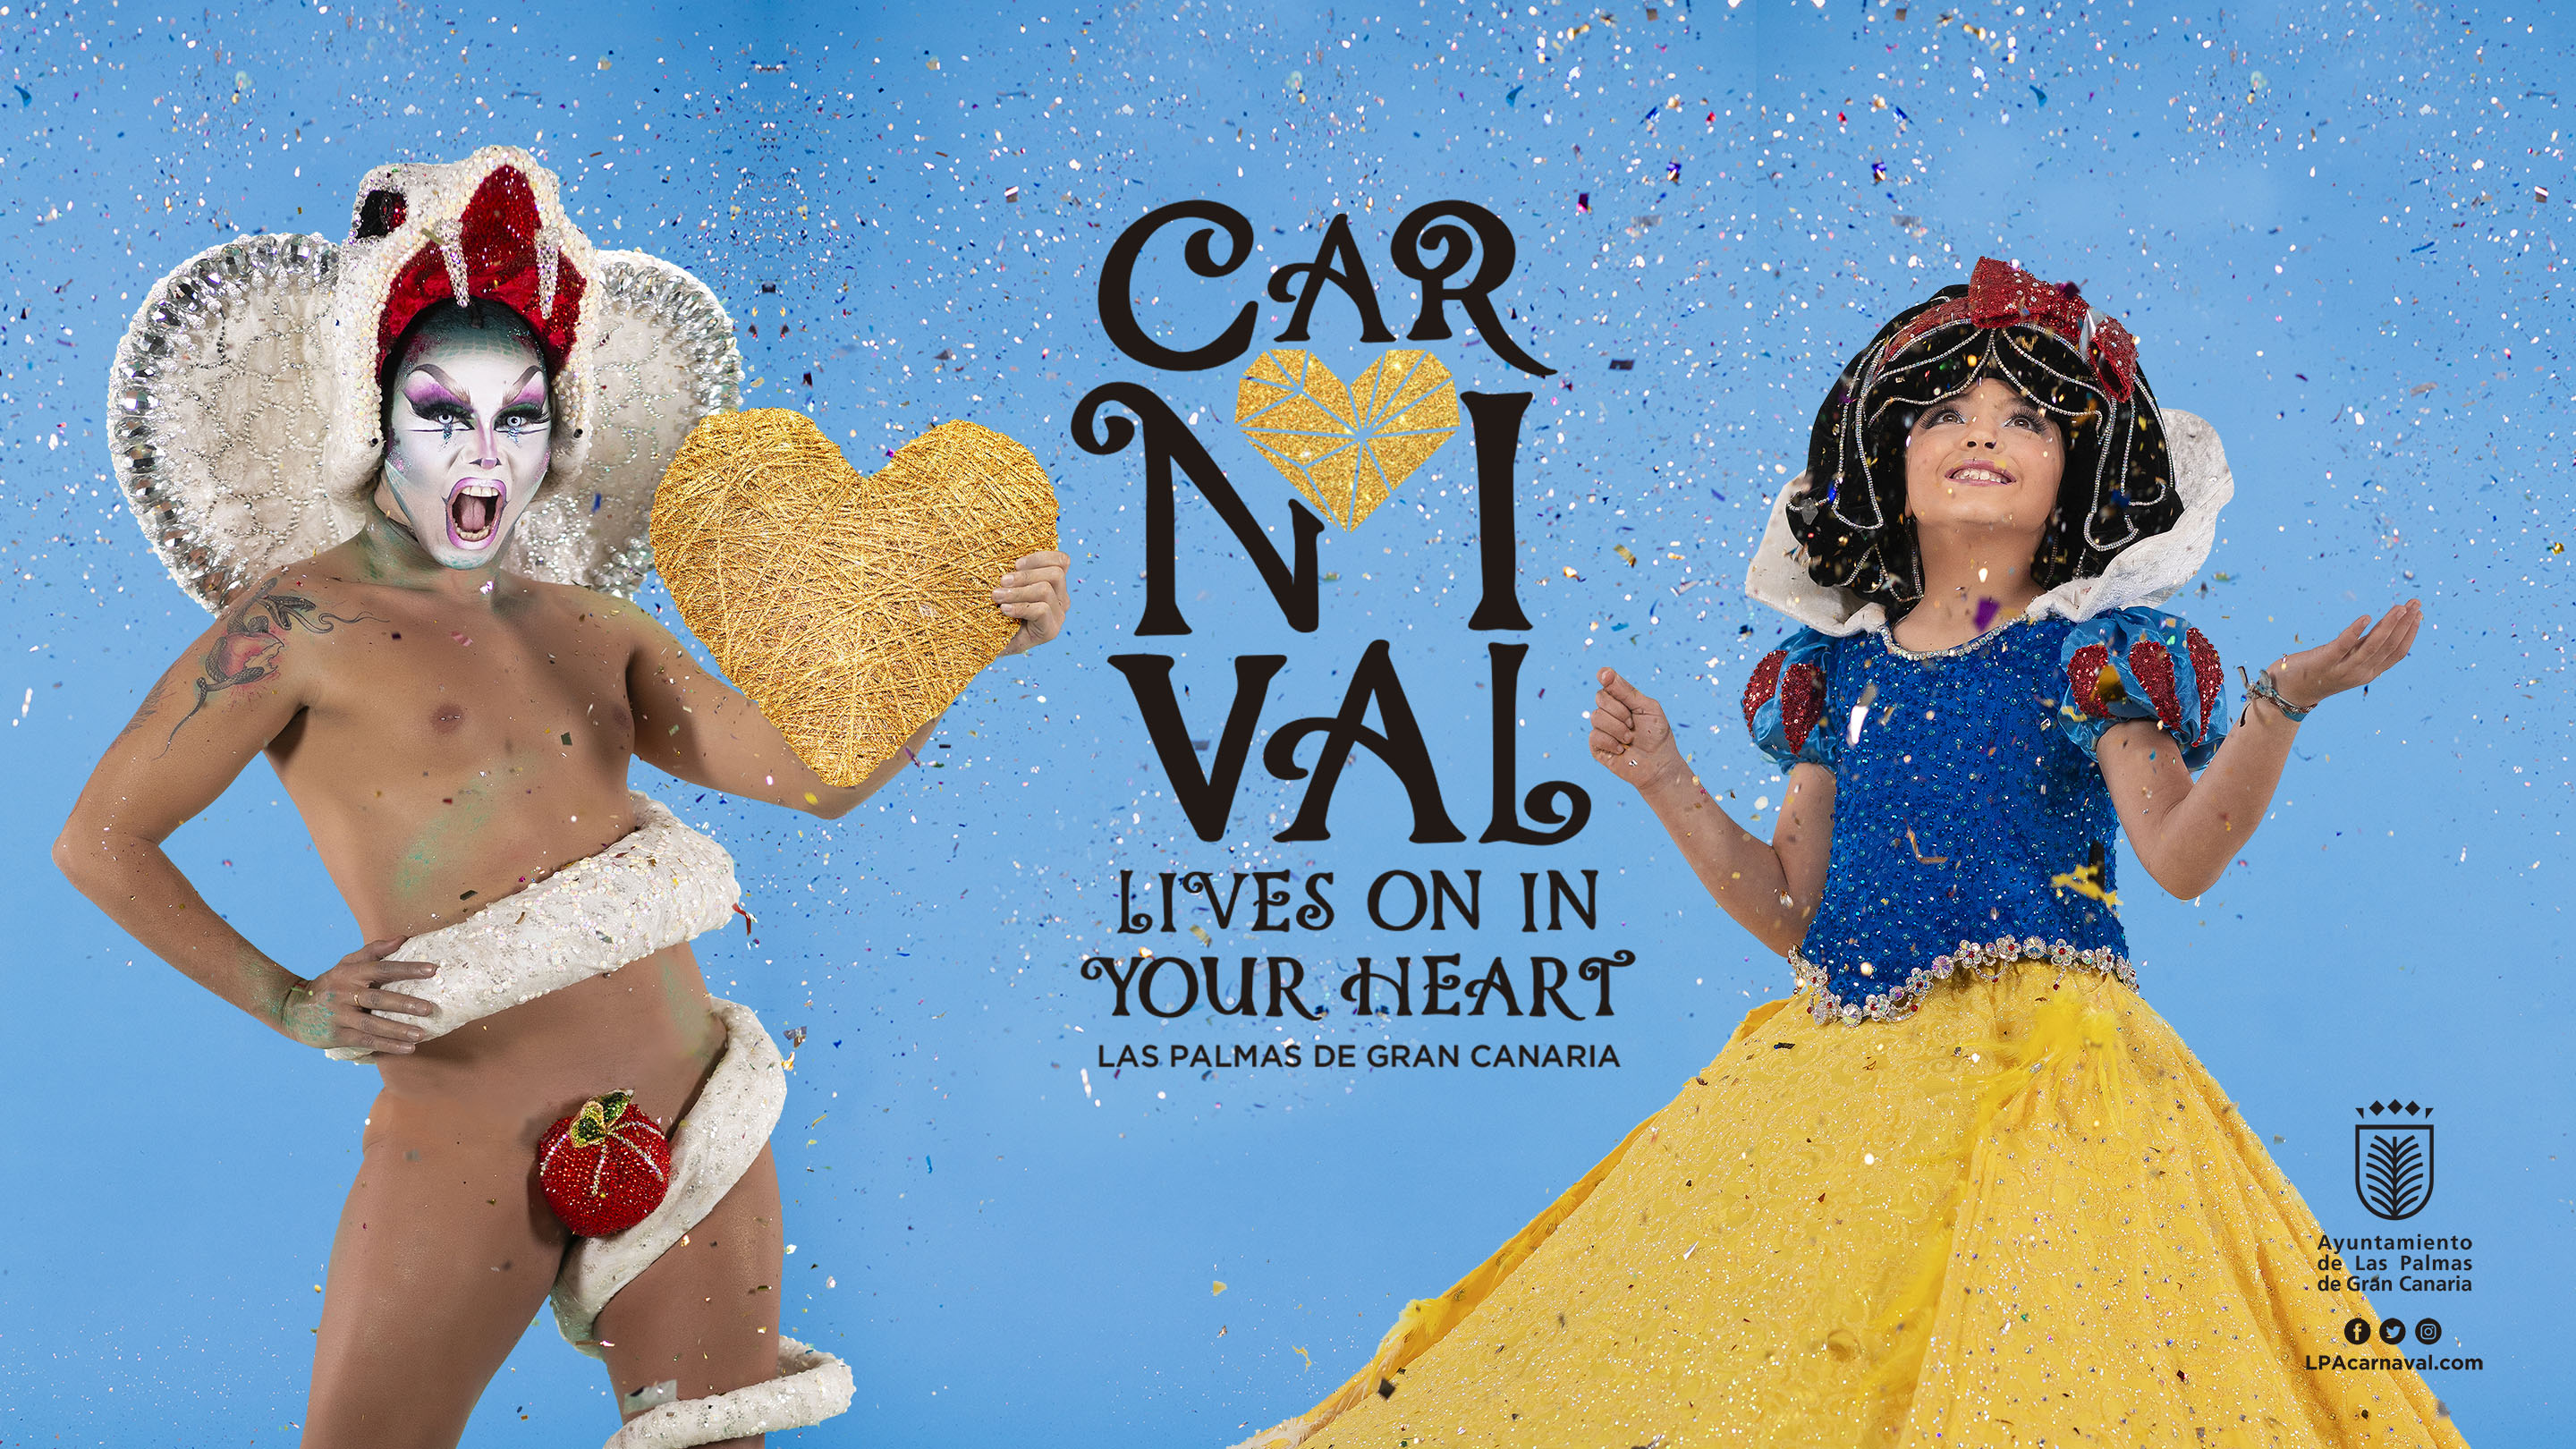 Carnival lives on in your heart